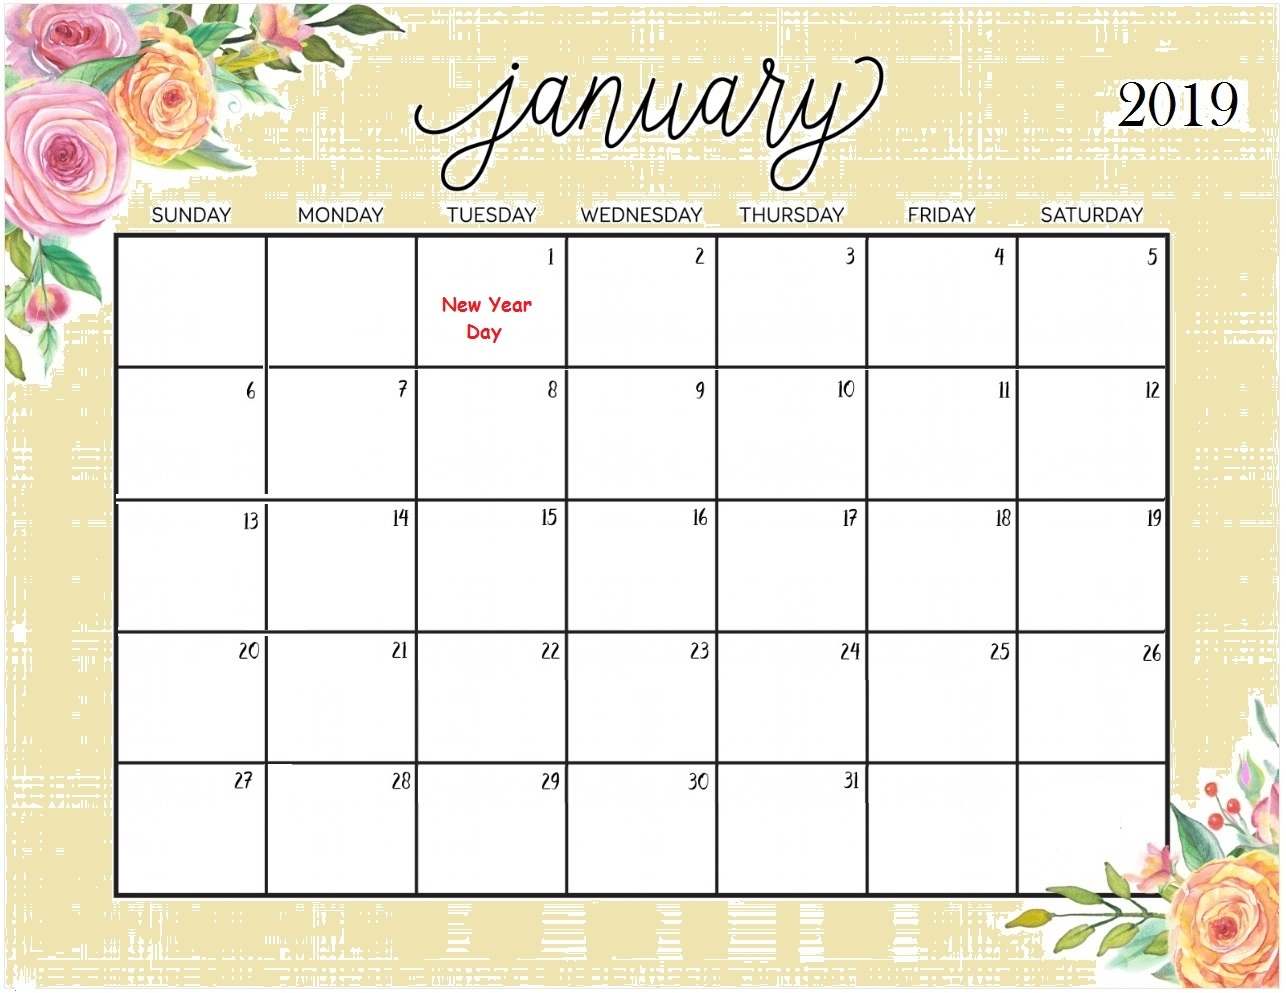 january 2019 calendar printable archives printable calendar 2018::Print January 2019 Calendar